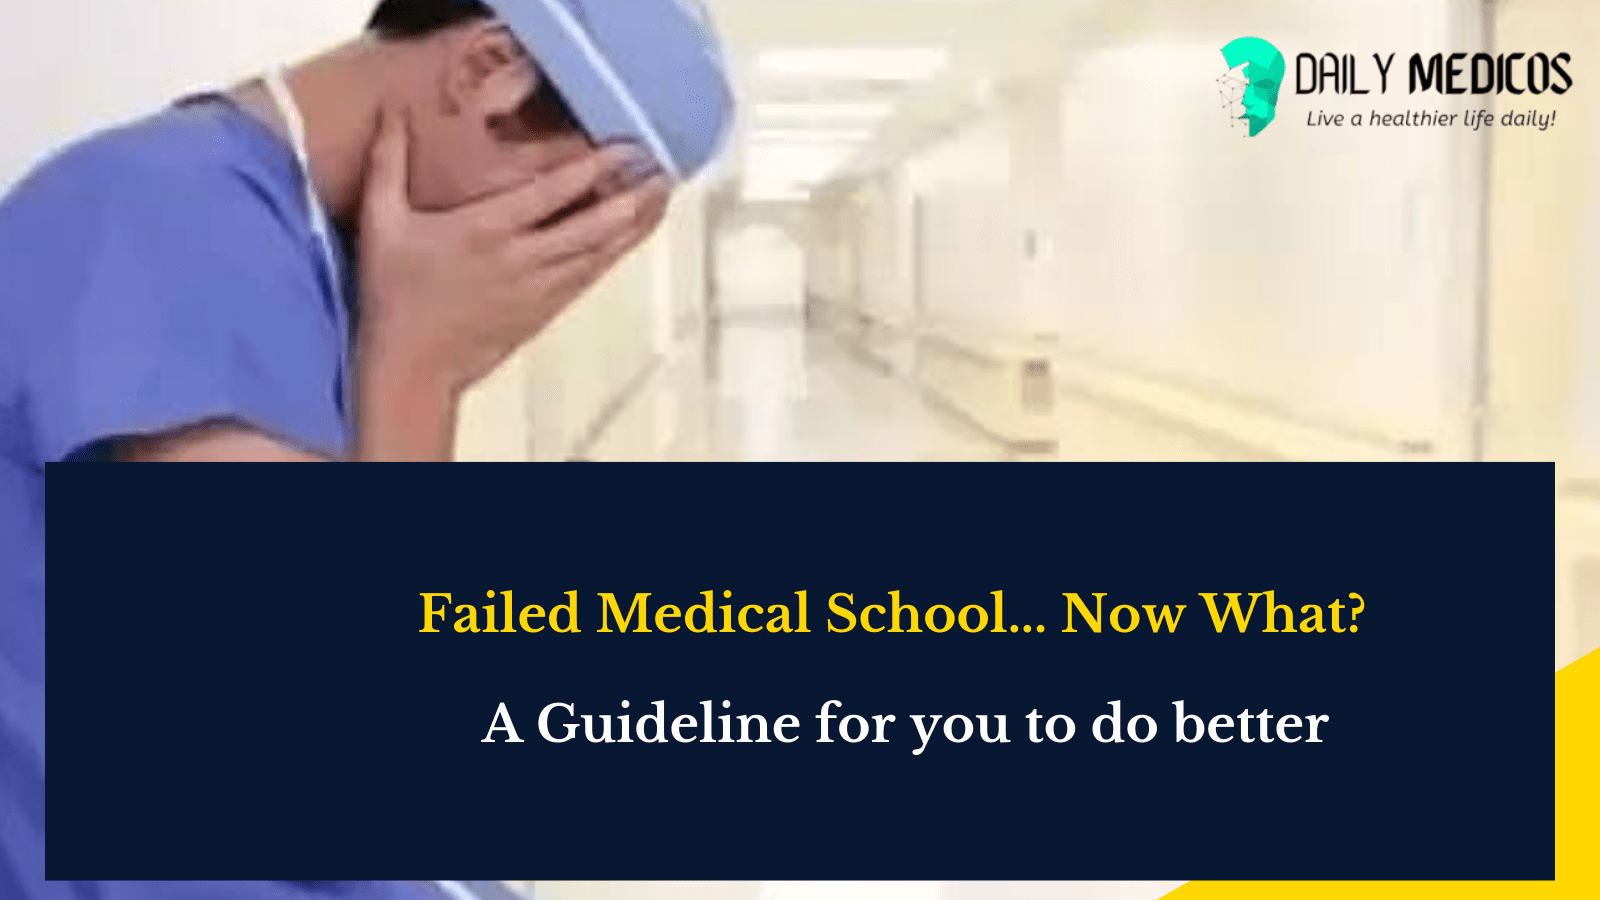 Failed Medical School... Now What? A Guideline for you to do better 22 - Daily Medicos